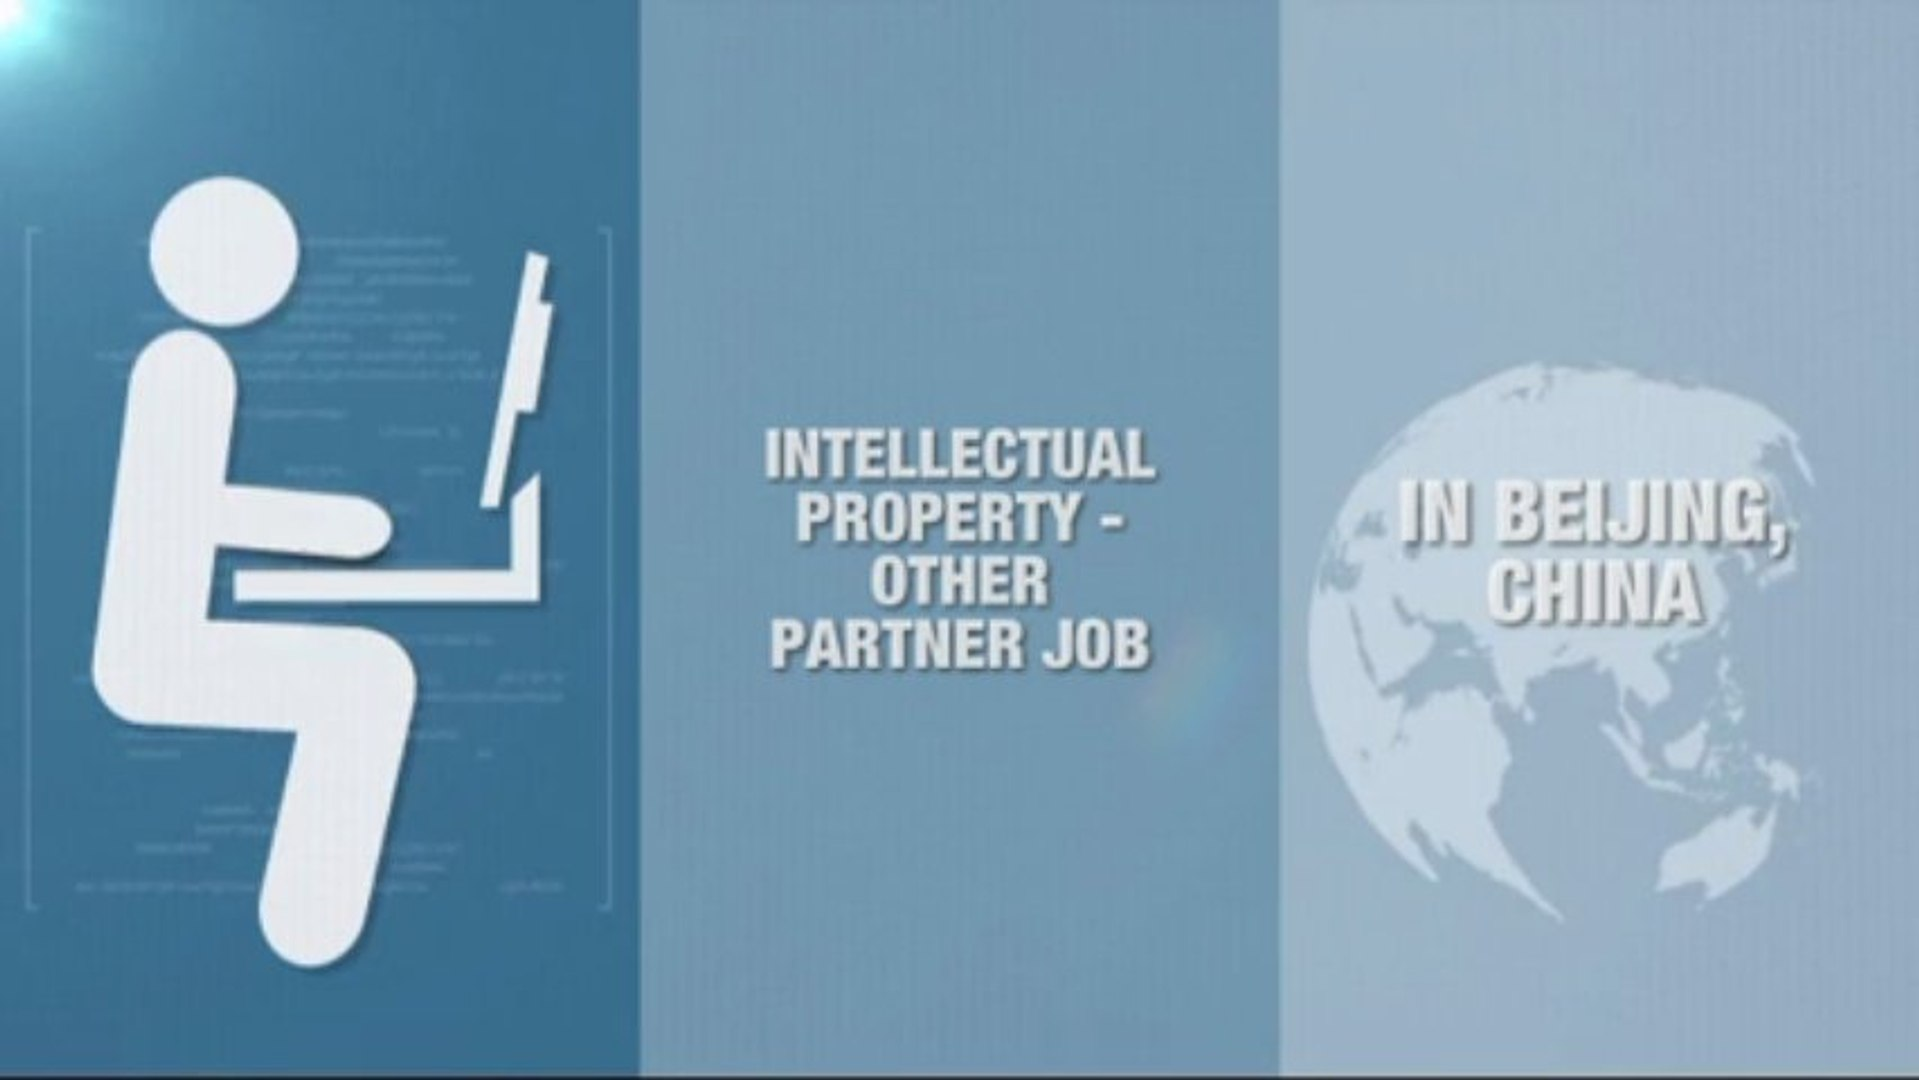 Intellectual Property - Other Partner jobs In Beijing, China